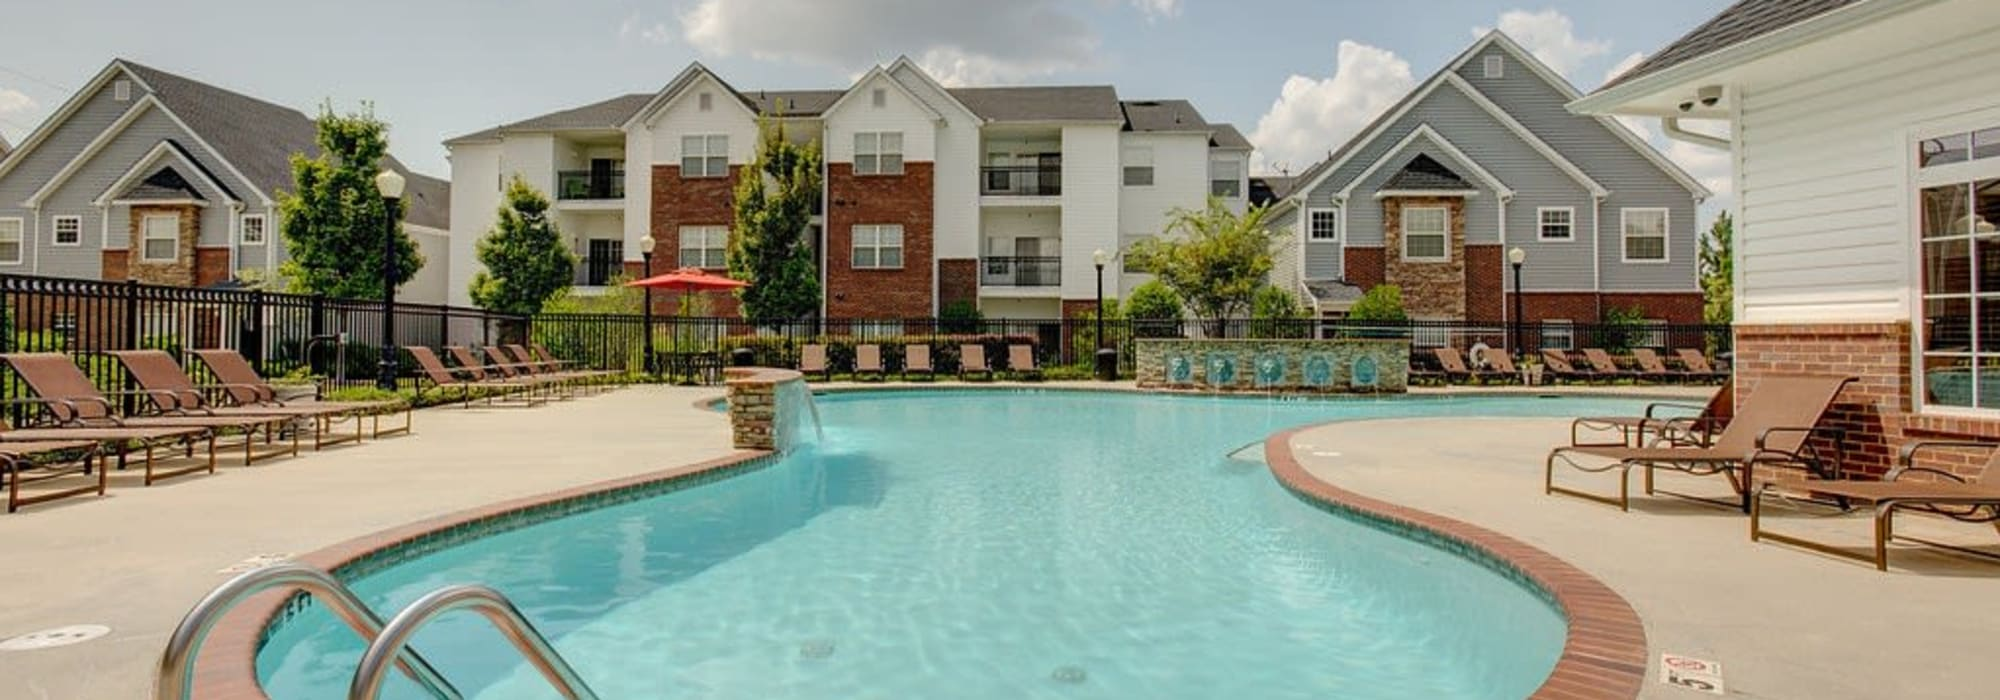 Apartments at Reserve at Long Point in Hattiesburg, Mississippi